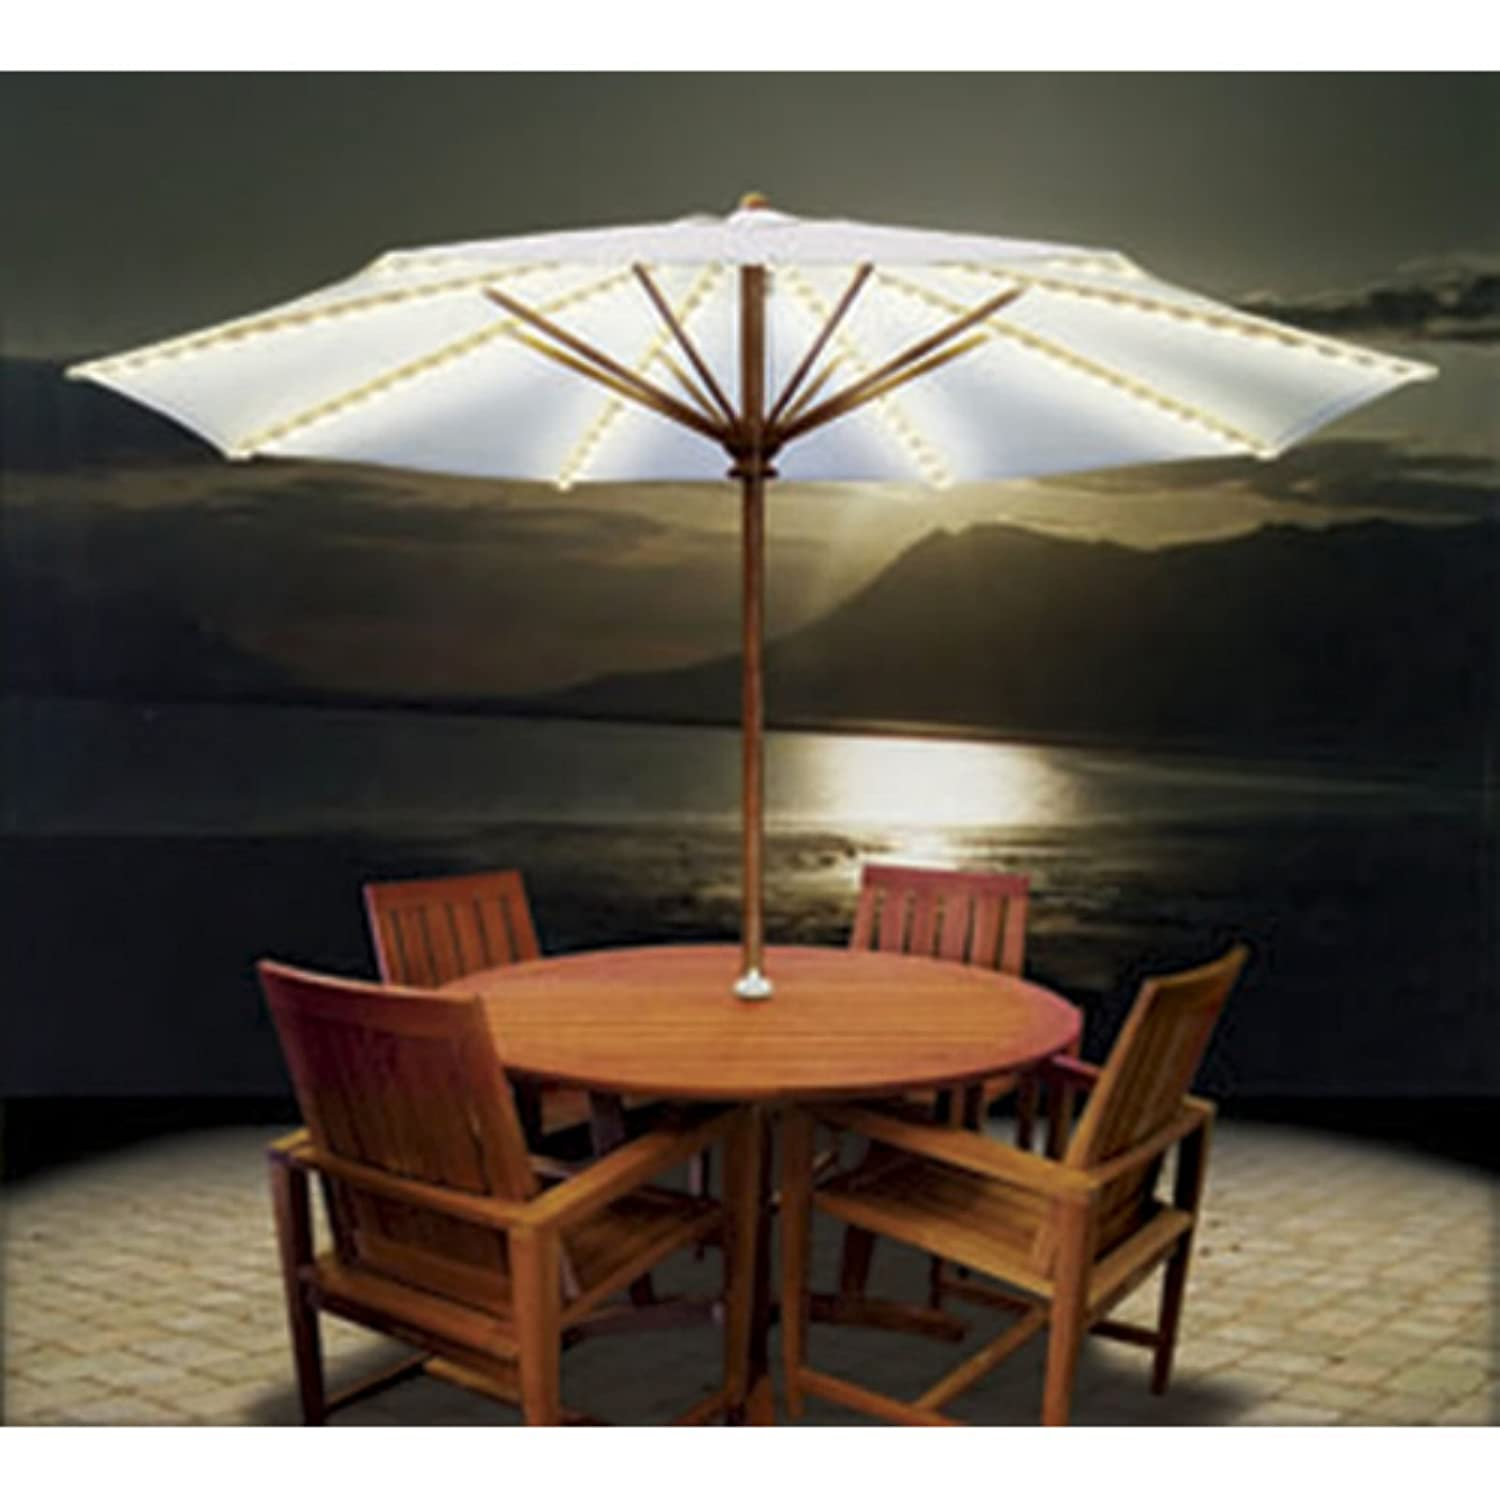 Awesome Blue Star Group BRELLA LIGHTS   Patio Umbrella Lighting System With Power  Pod     Amazon.com